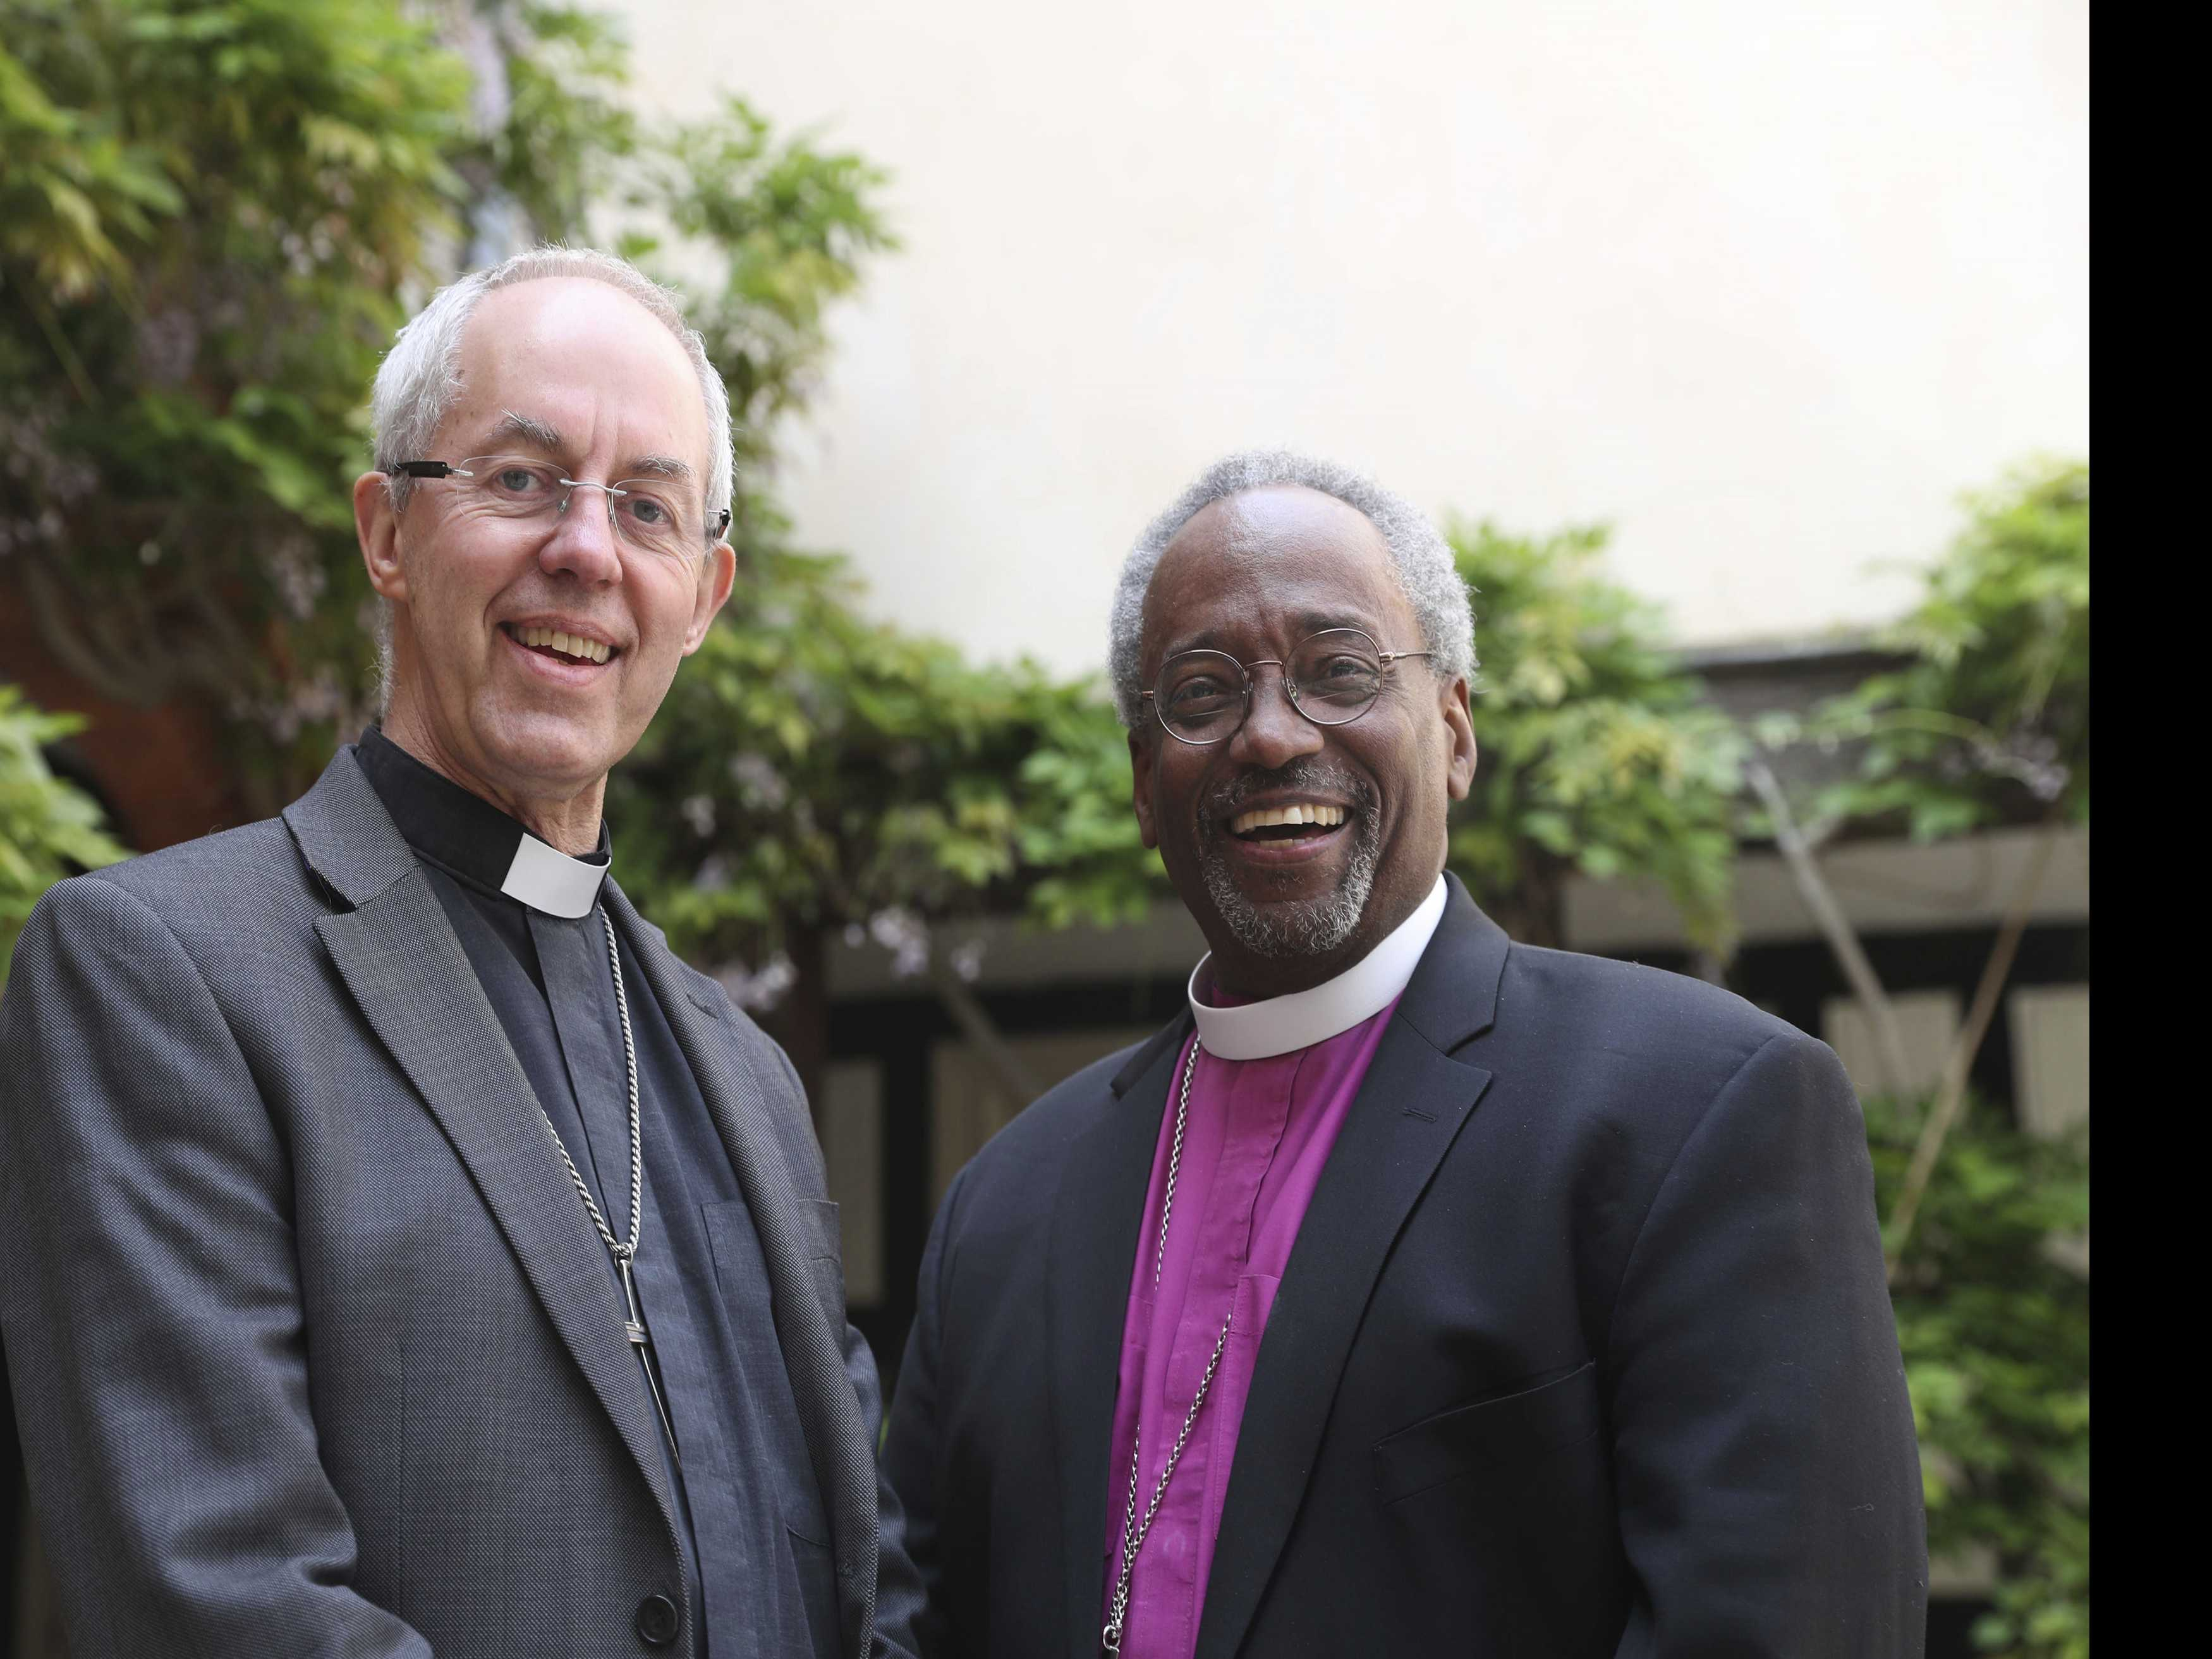 American Bishop Brings Human Rights Focus to Royal Wedding